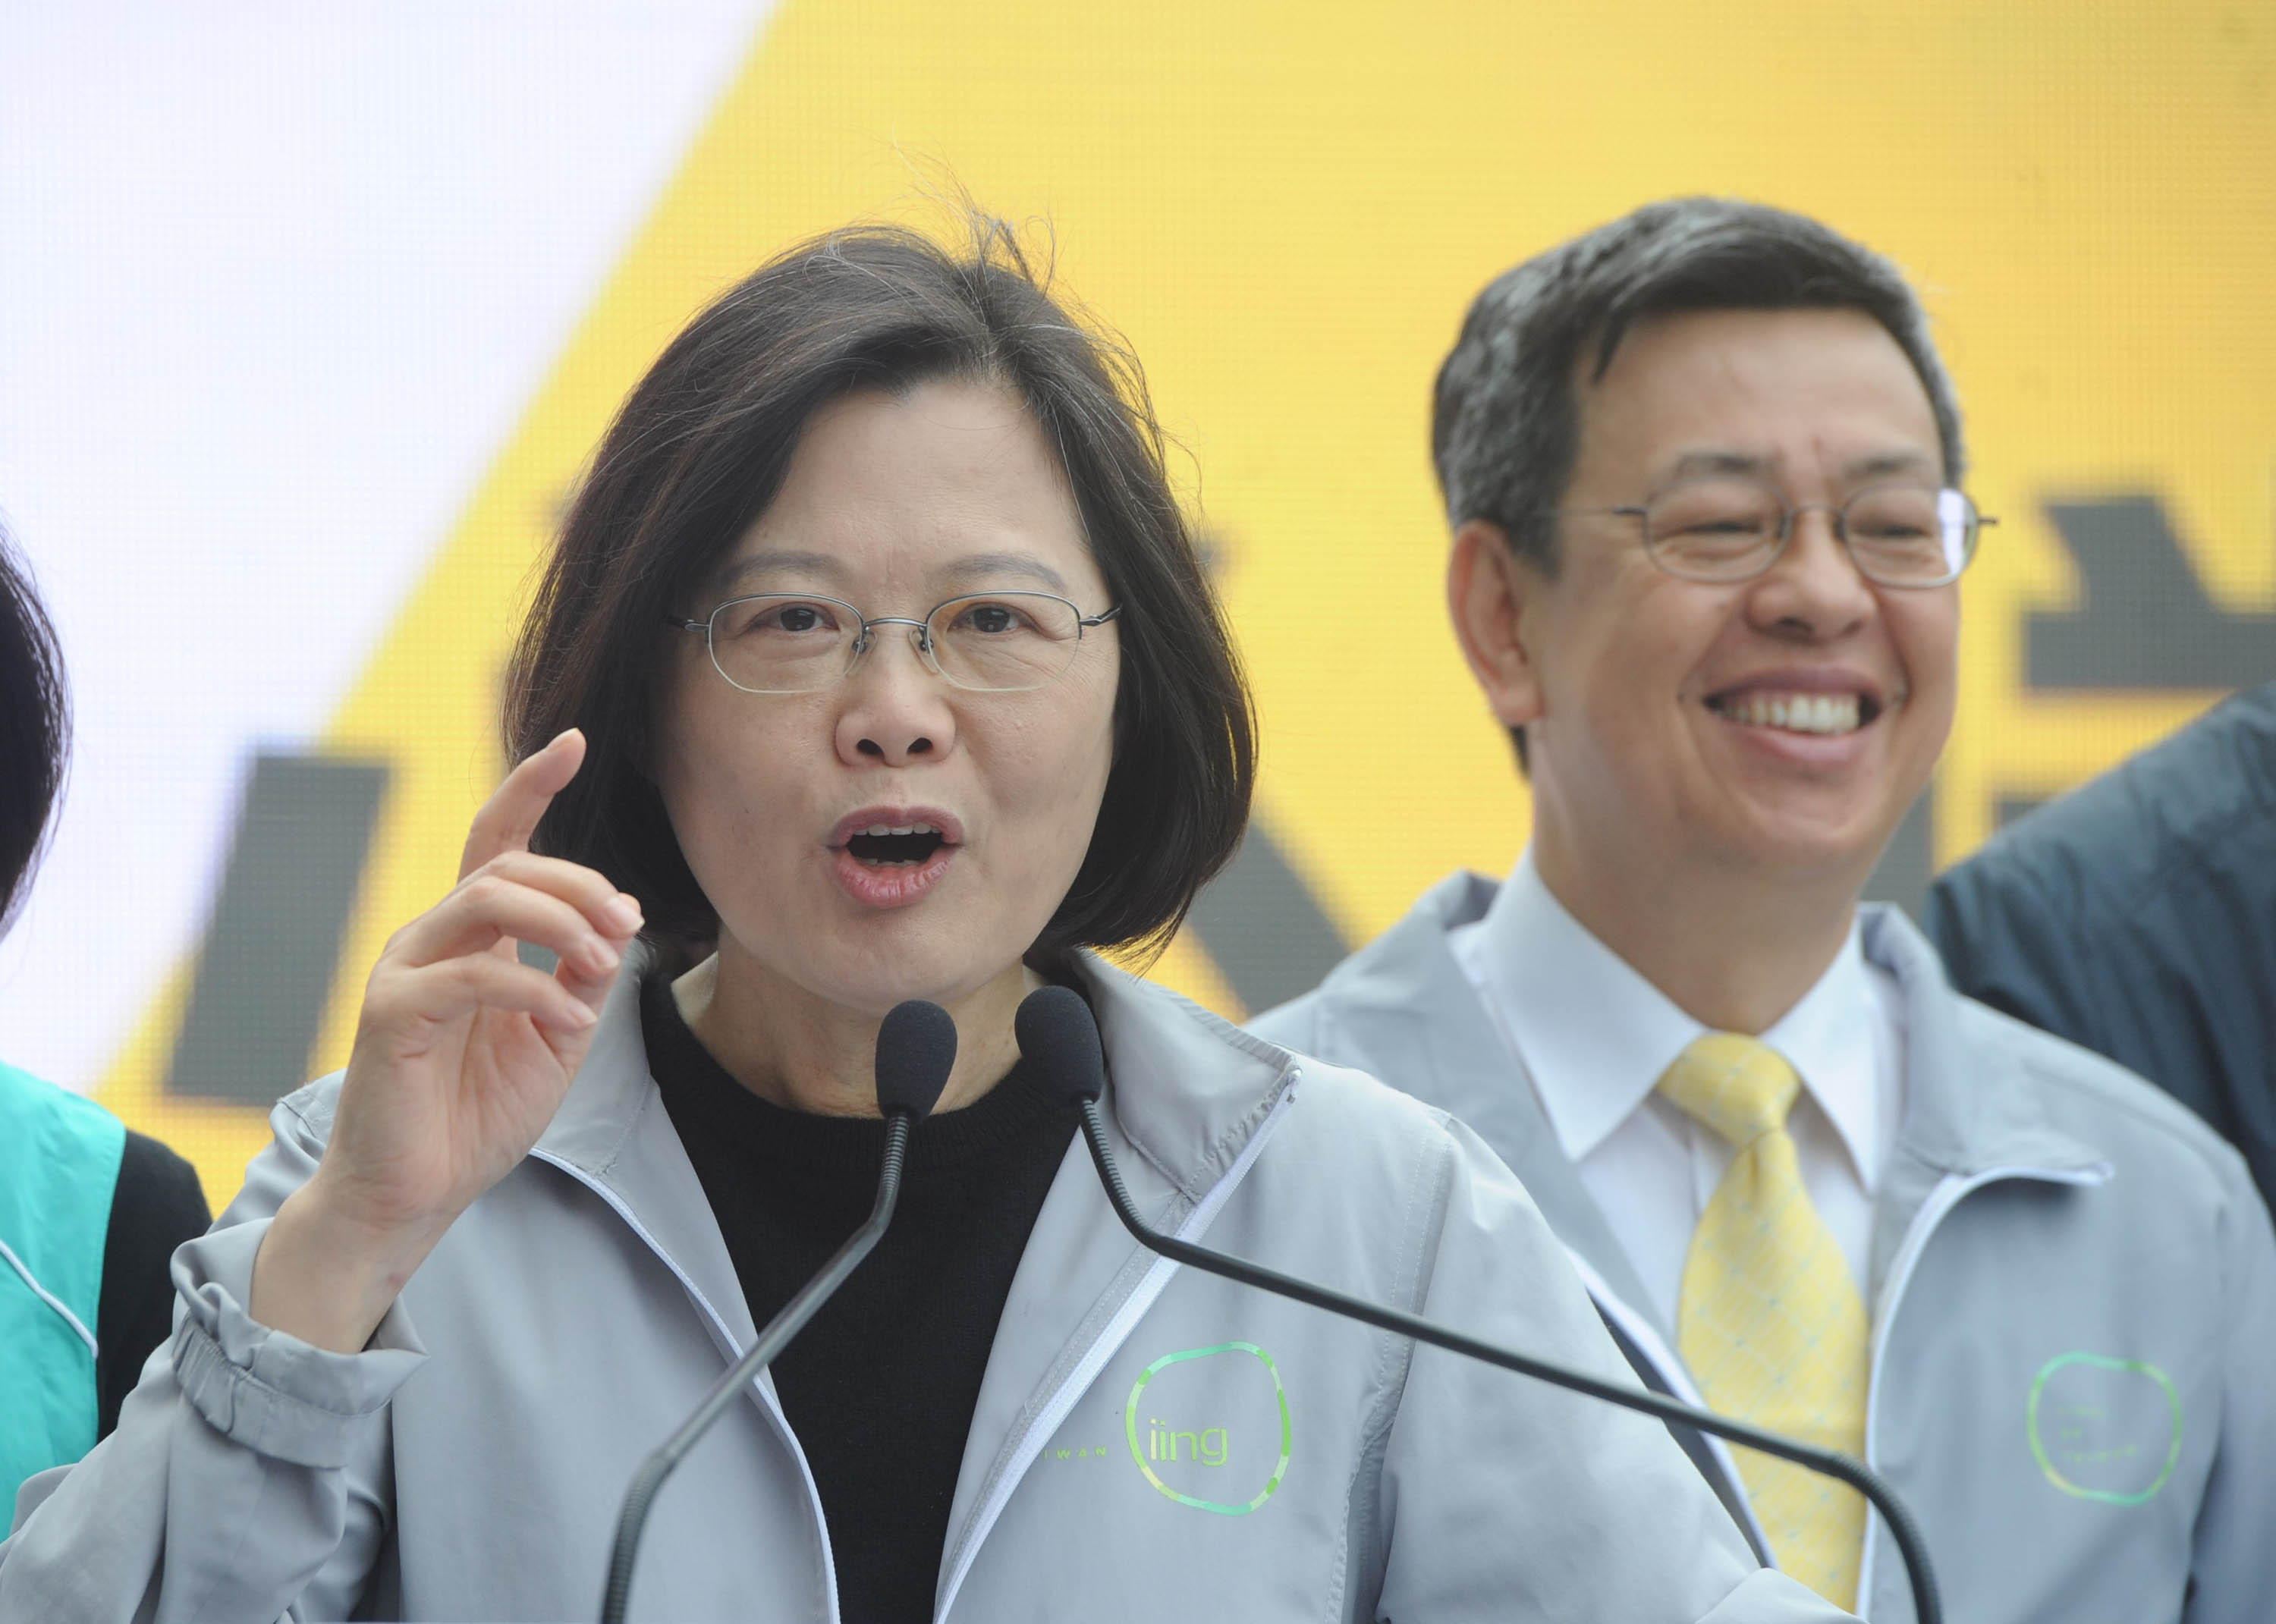 The article analyzed Taiwan's presidential election, and said that President Ma Ying-jeou's failure to deliver on bold economic targets has made the r...